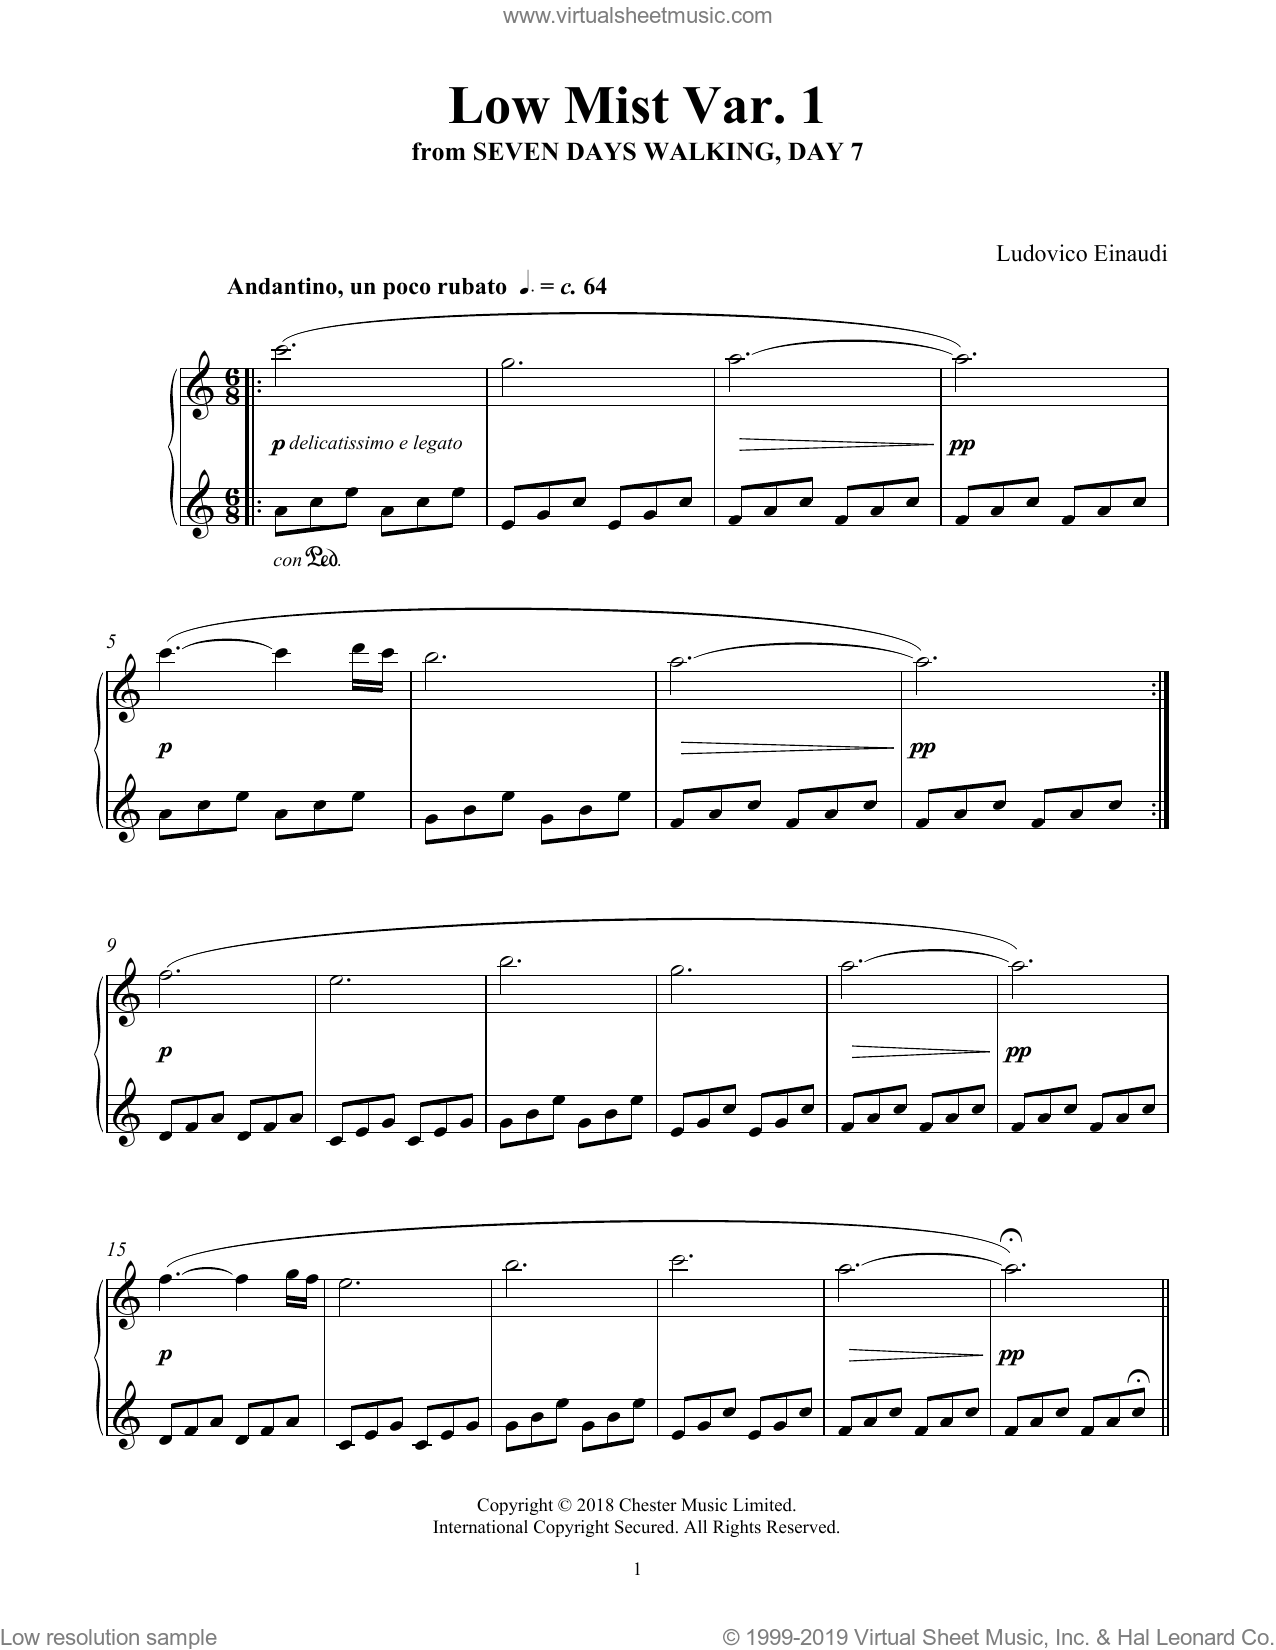 Low Mist Var. 1 (from Seven Days Walking: Day 7) sheet music for piano solo by Ludovico Einaudi, classical score, intermediate skill level